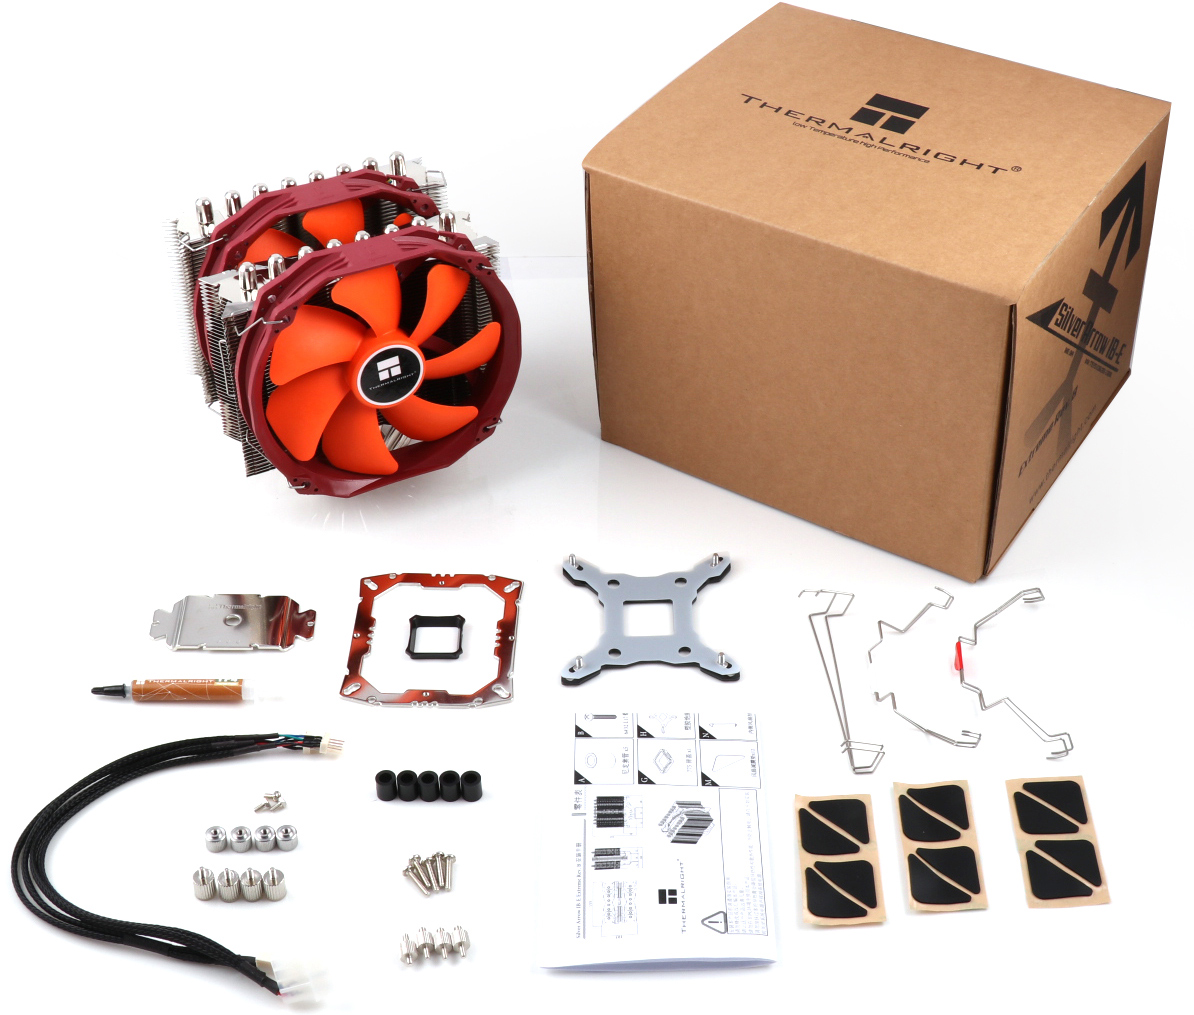 Thermalright Silver Arrow IB-E Extreme Rev  B: An Air Cooler